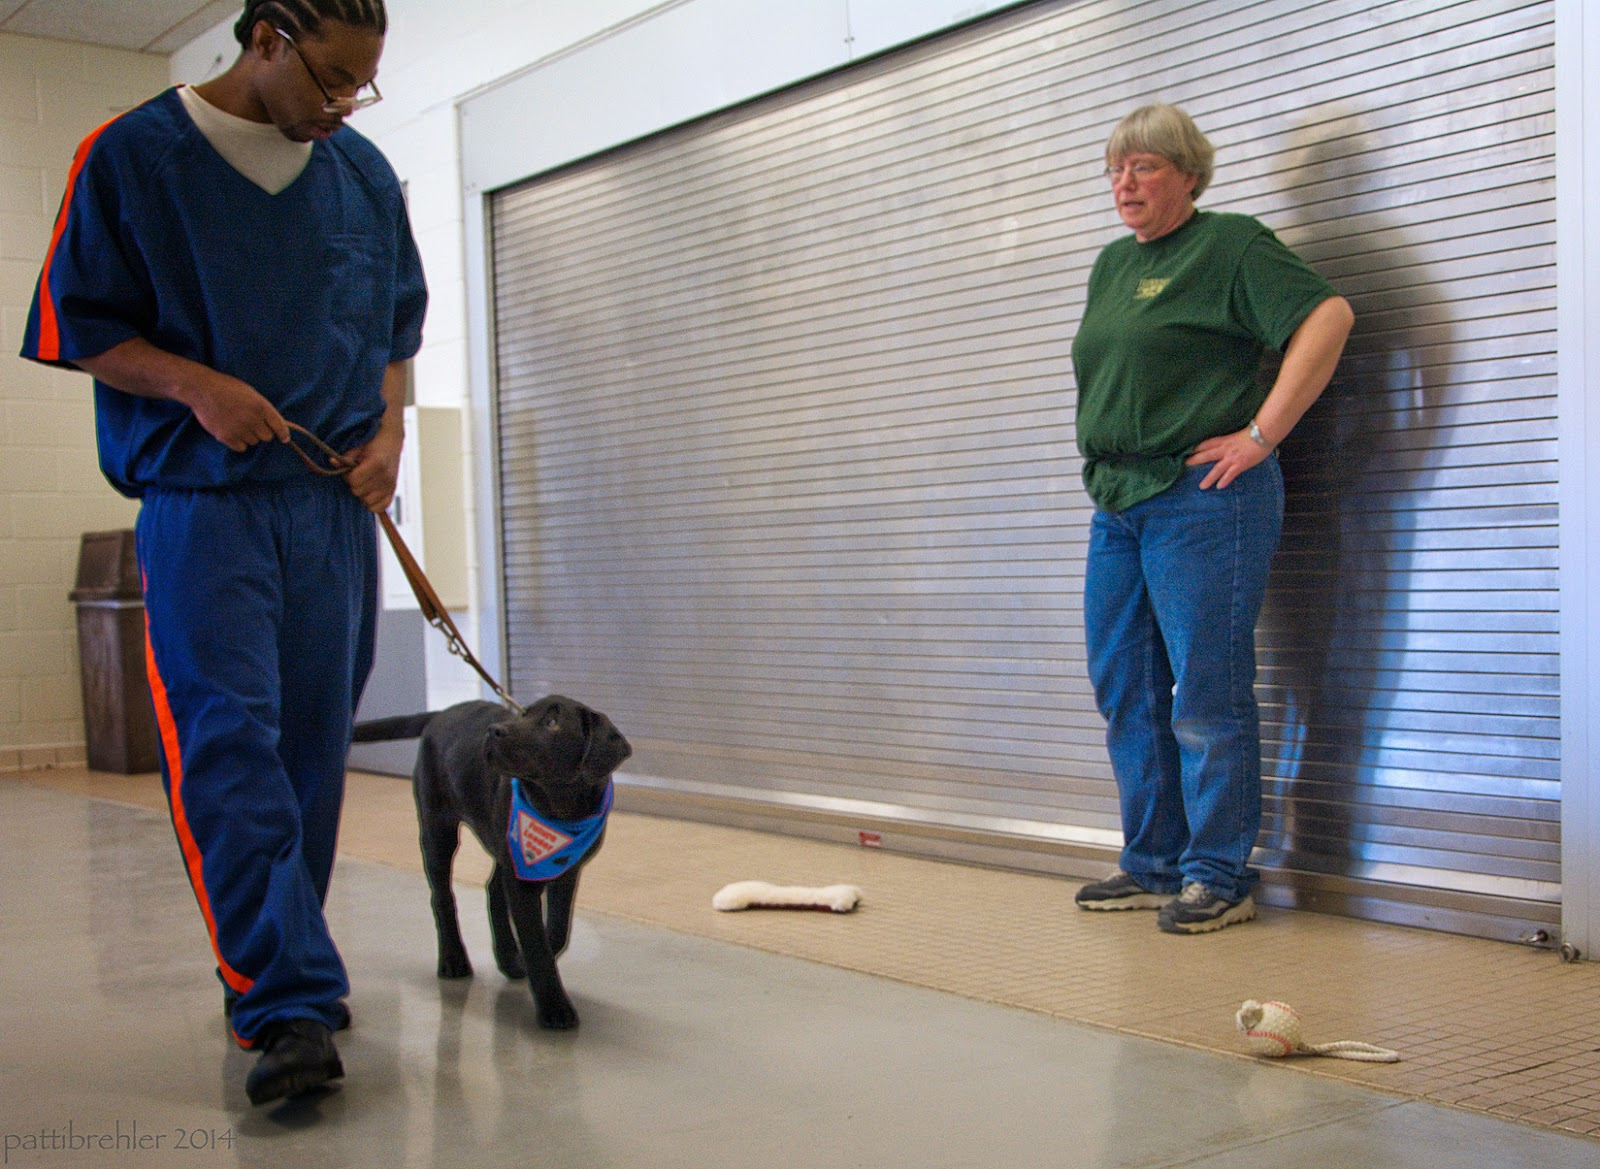 This time an african american man dressed in the blue prison uniform is walking toward the camera holding the leash of a small black lab puppy. The puppy is wearing the blue Future Leader Dog bandana and is keeping a loose leash, looking up at the man, who is looking down at the puppy. The woman is still standing against the metal wall with her hands on her hips.